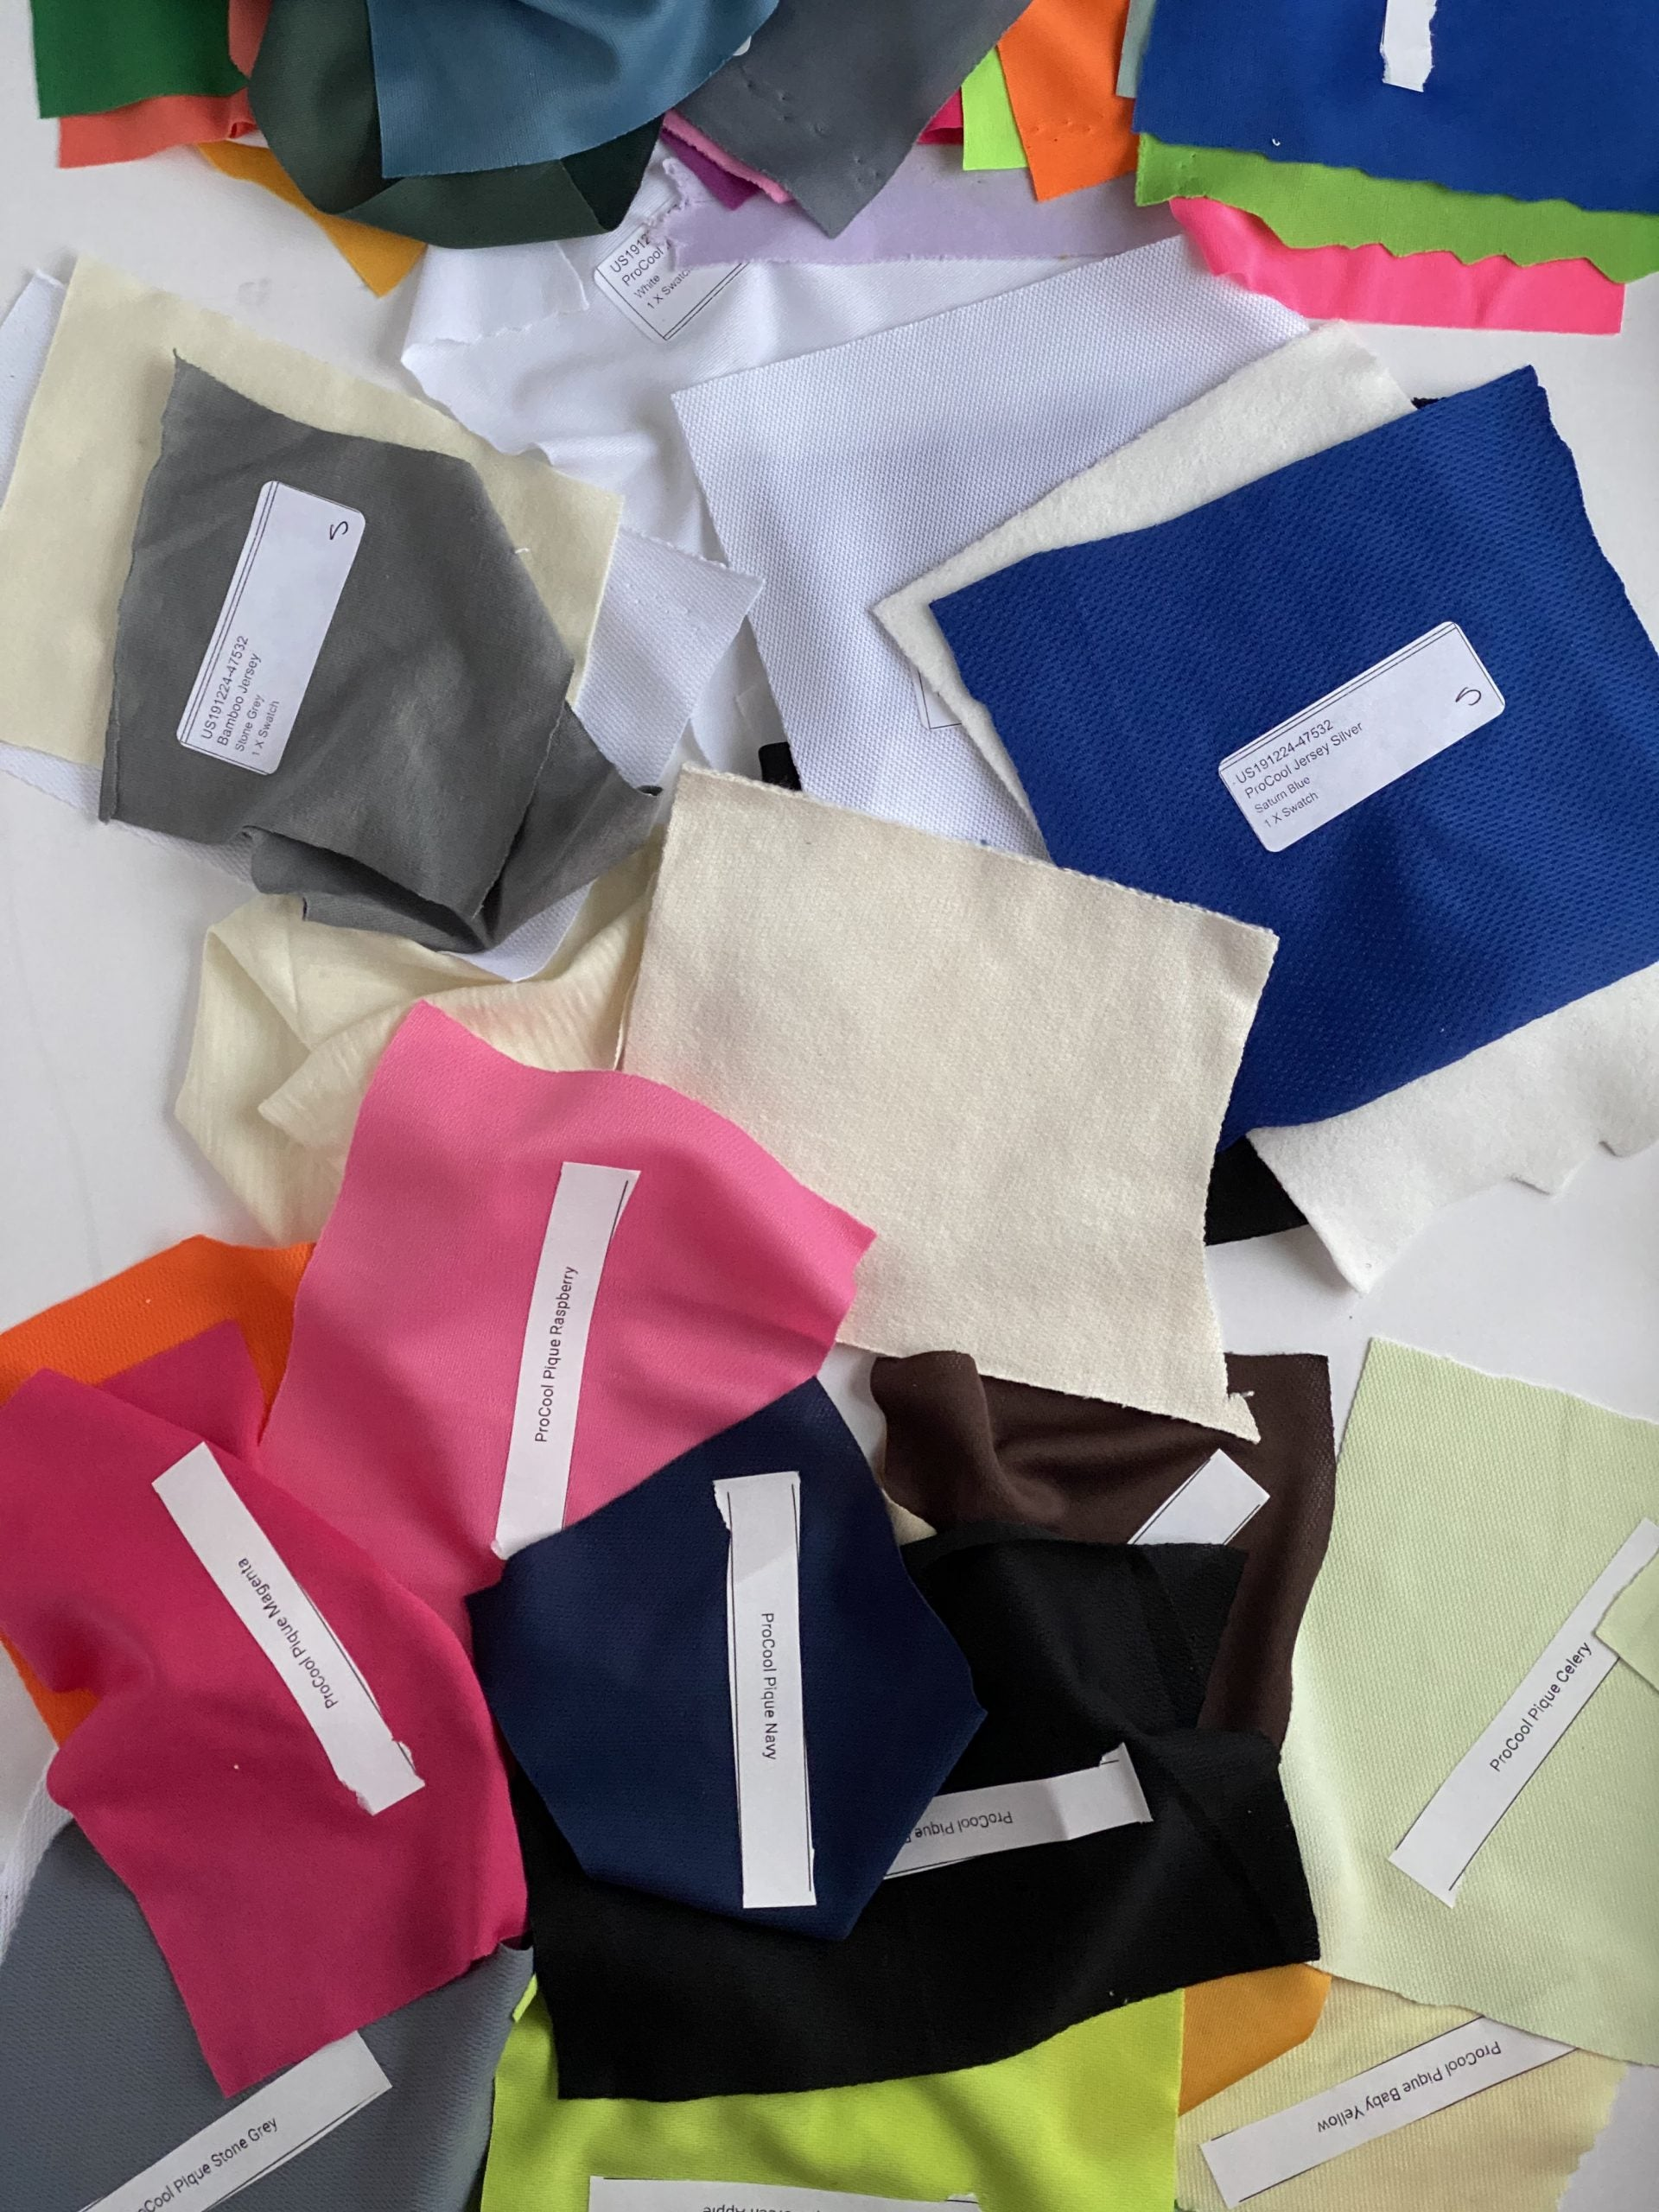 How We Source and Select Our Fabrics For Women's Mountain Bike Apparel - Fabric Swatches